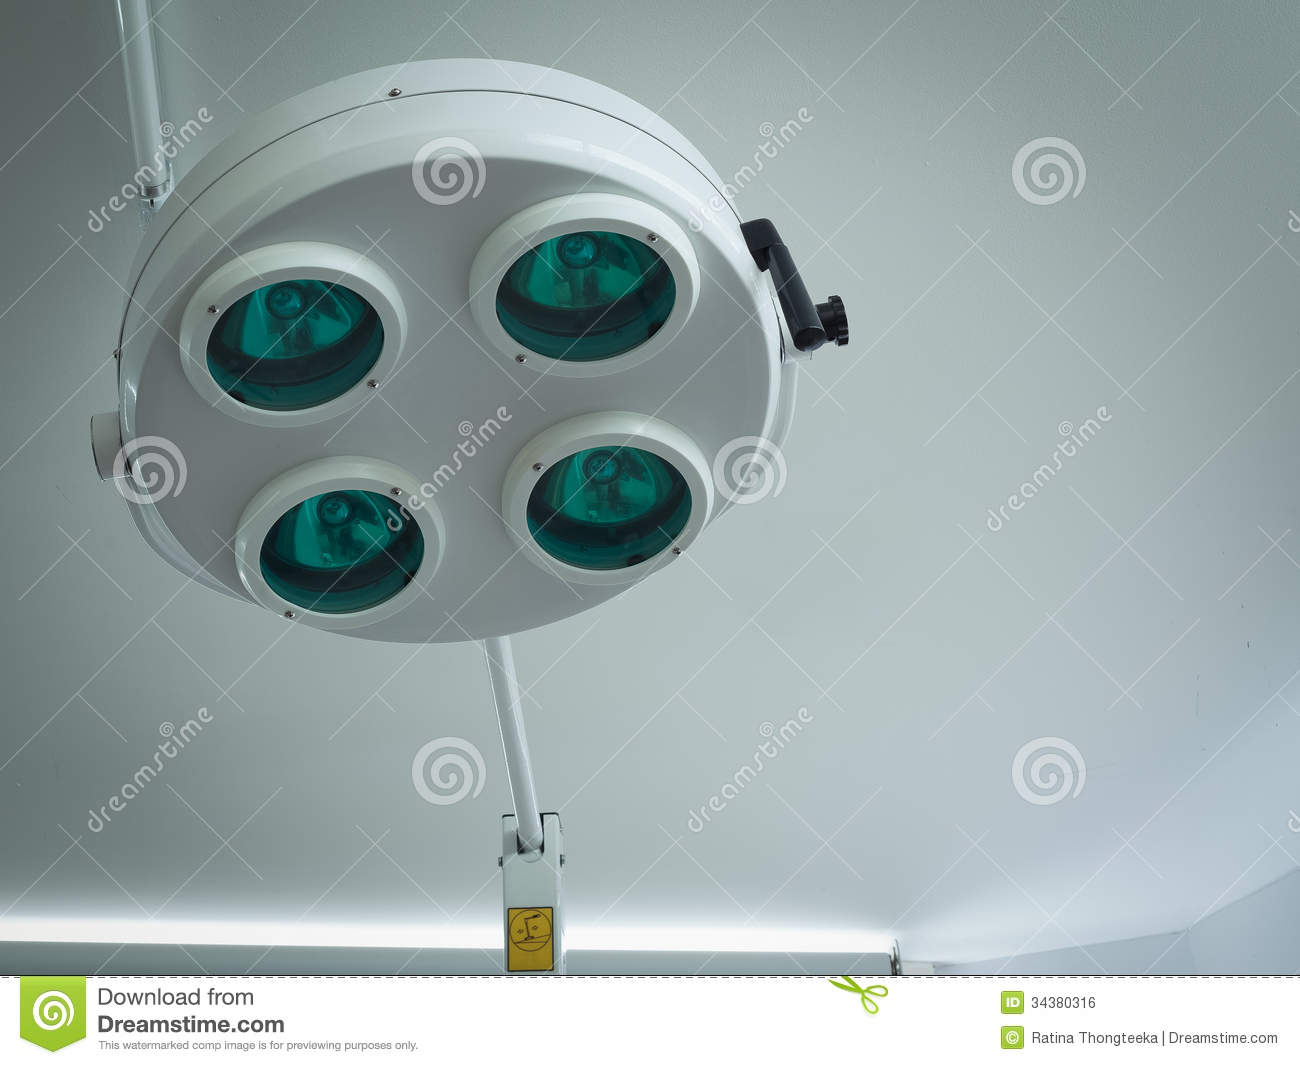 Surgical Light Or Medical Lamp In Operation Room Stock Photo